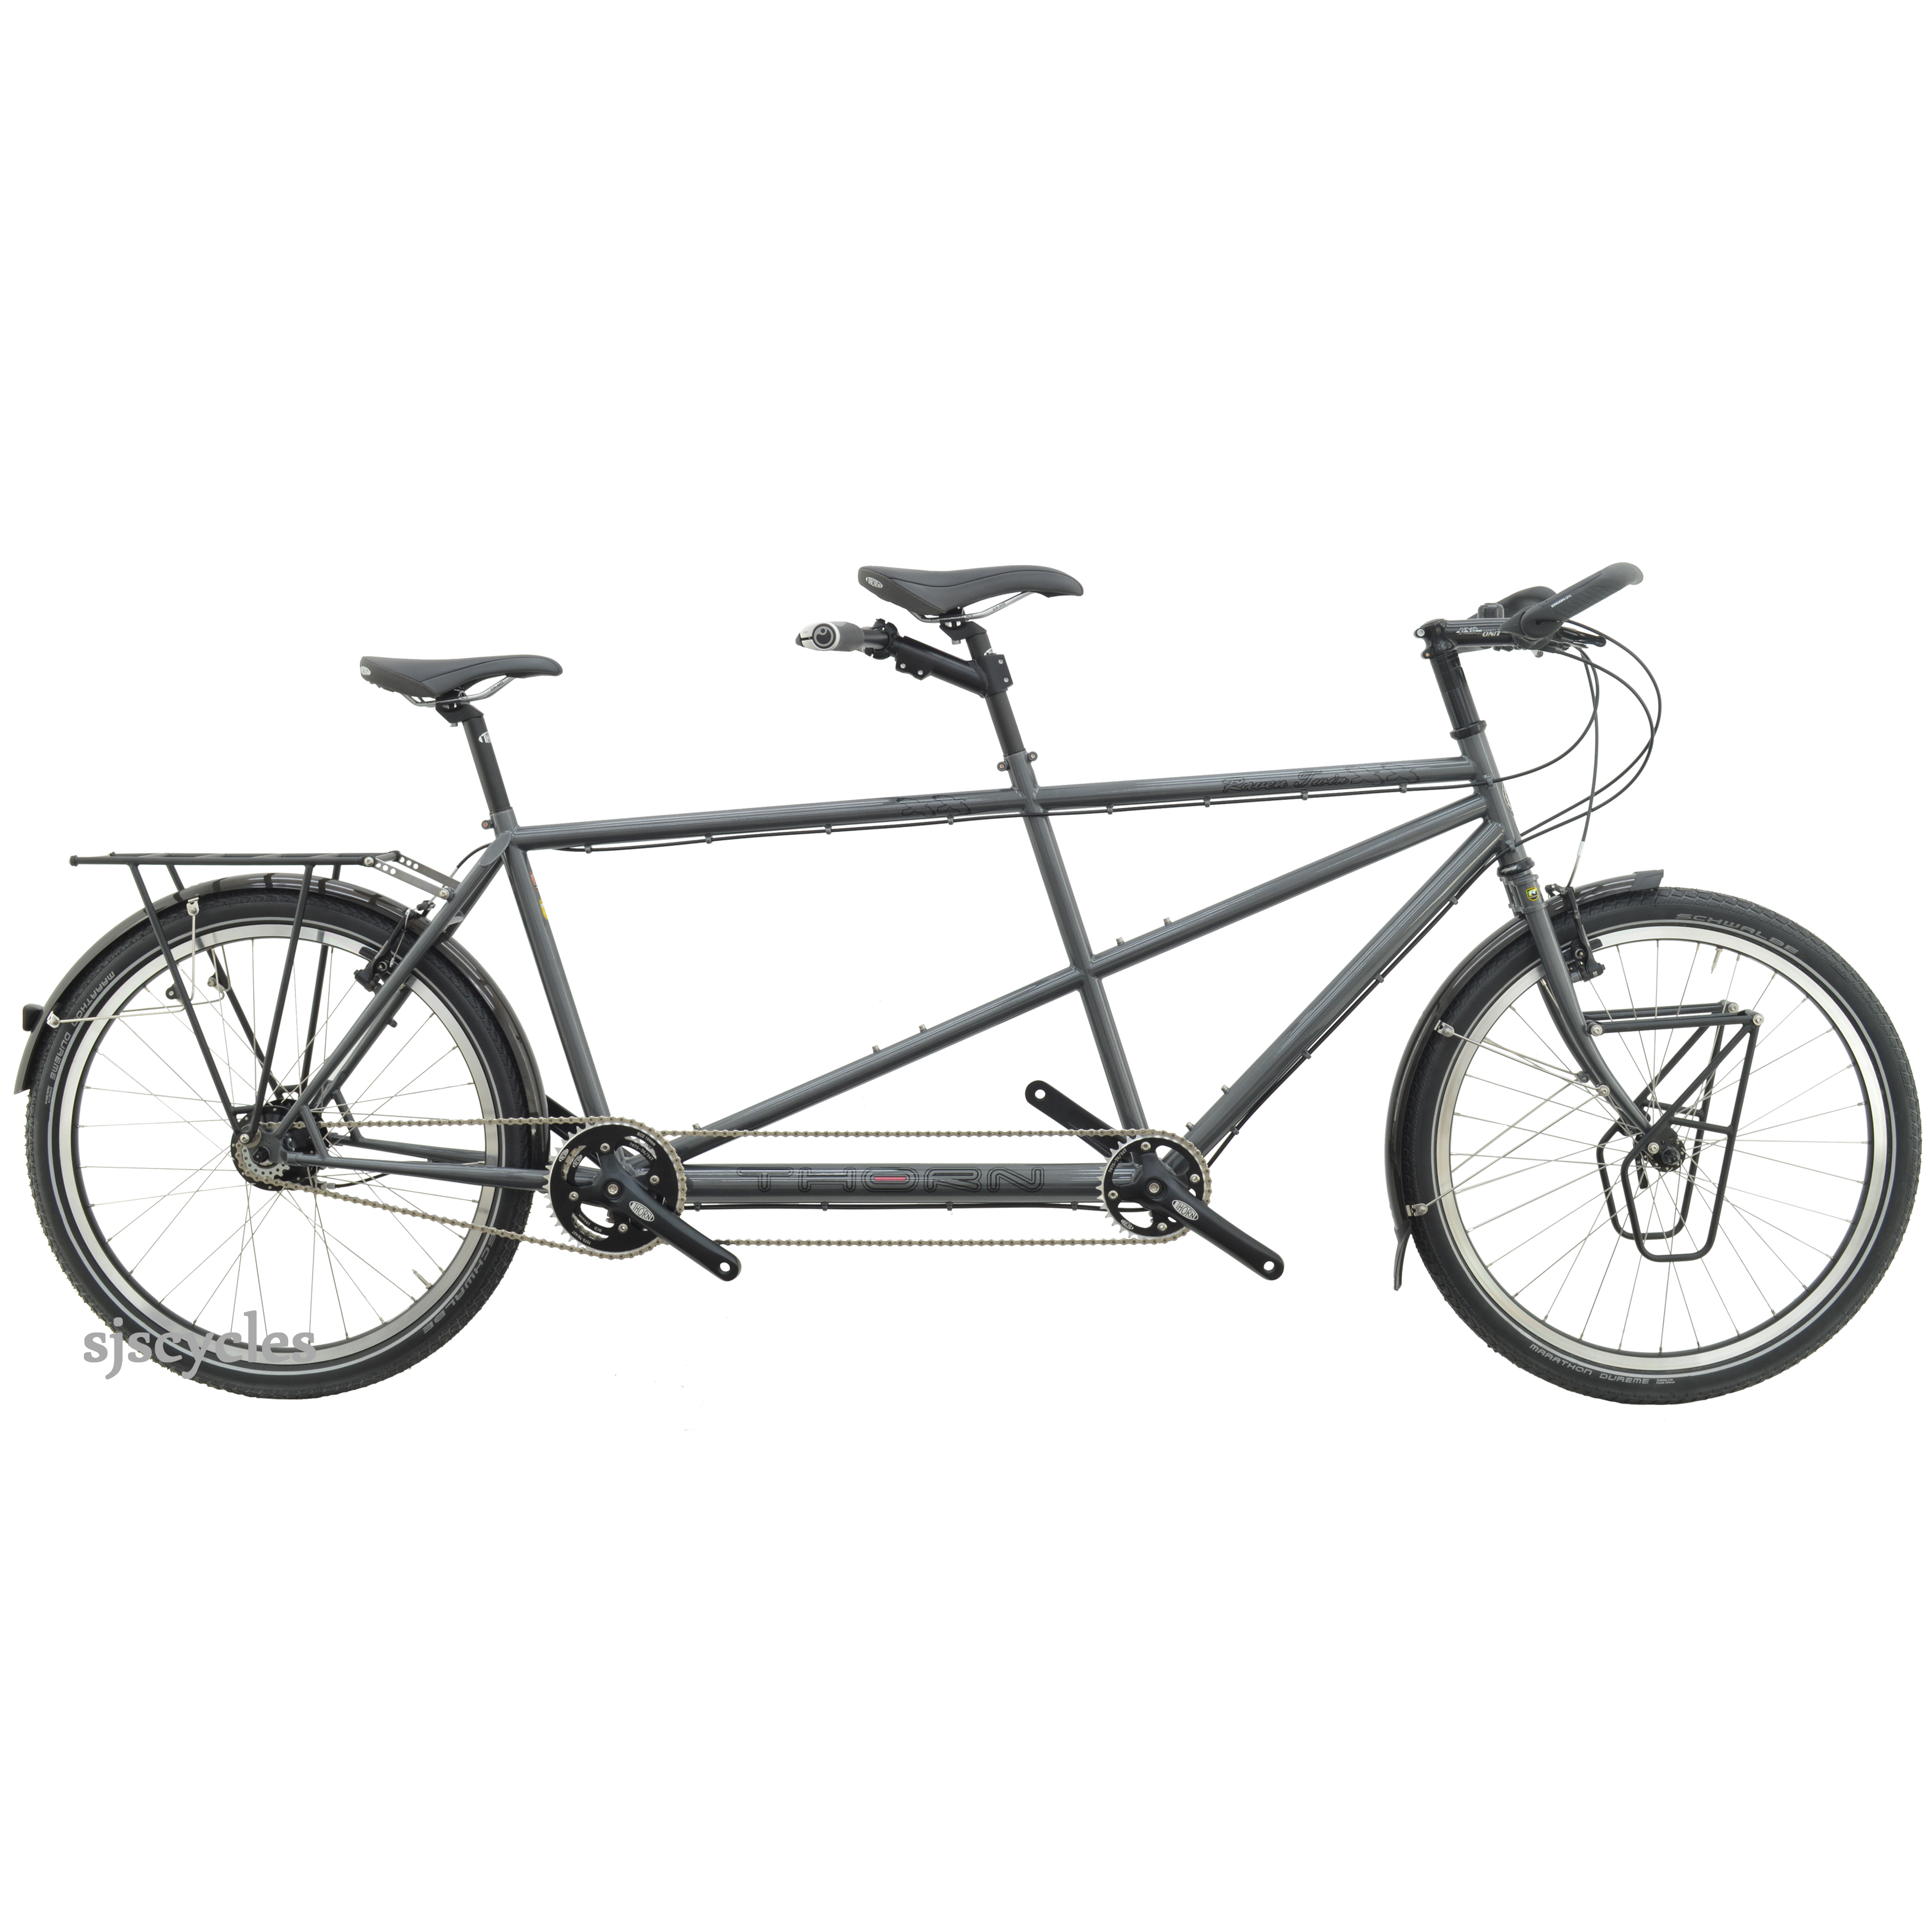 3500x3500 Thorn Rohloff Touring Expedition Tandem